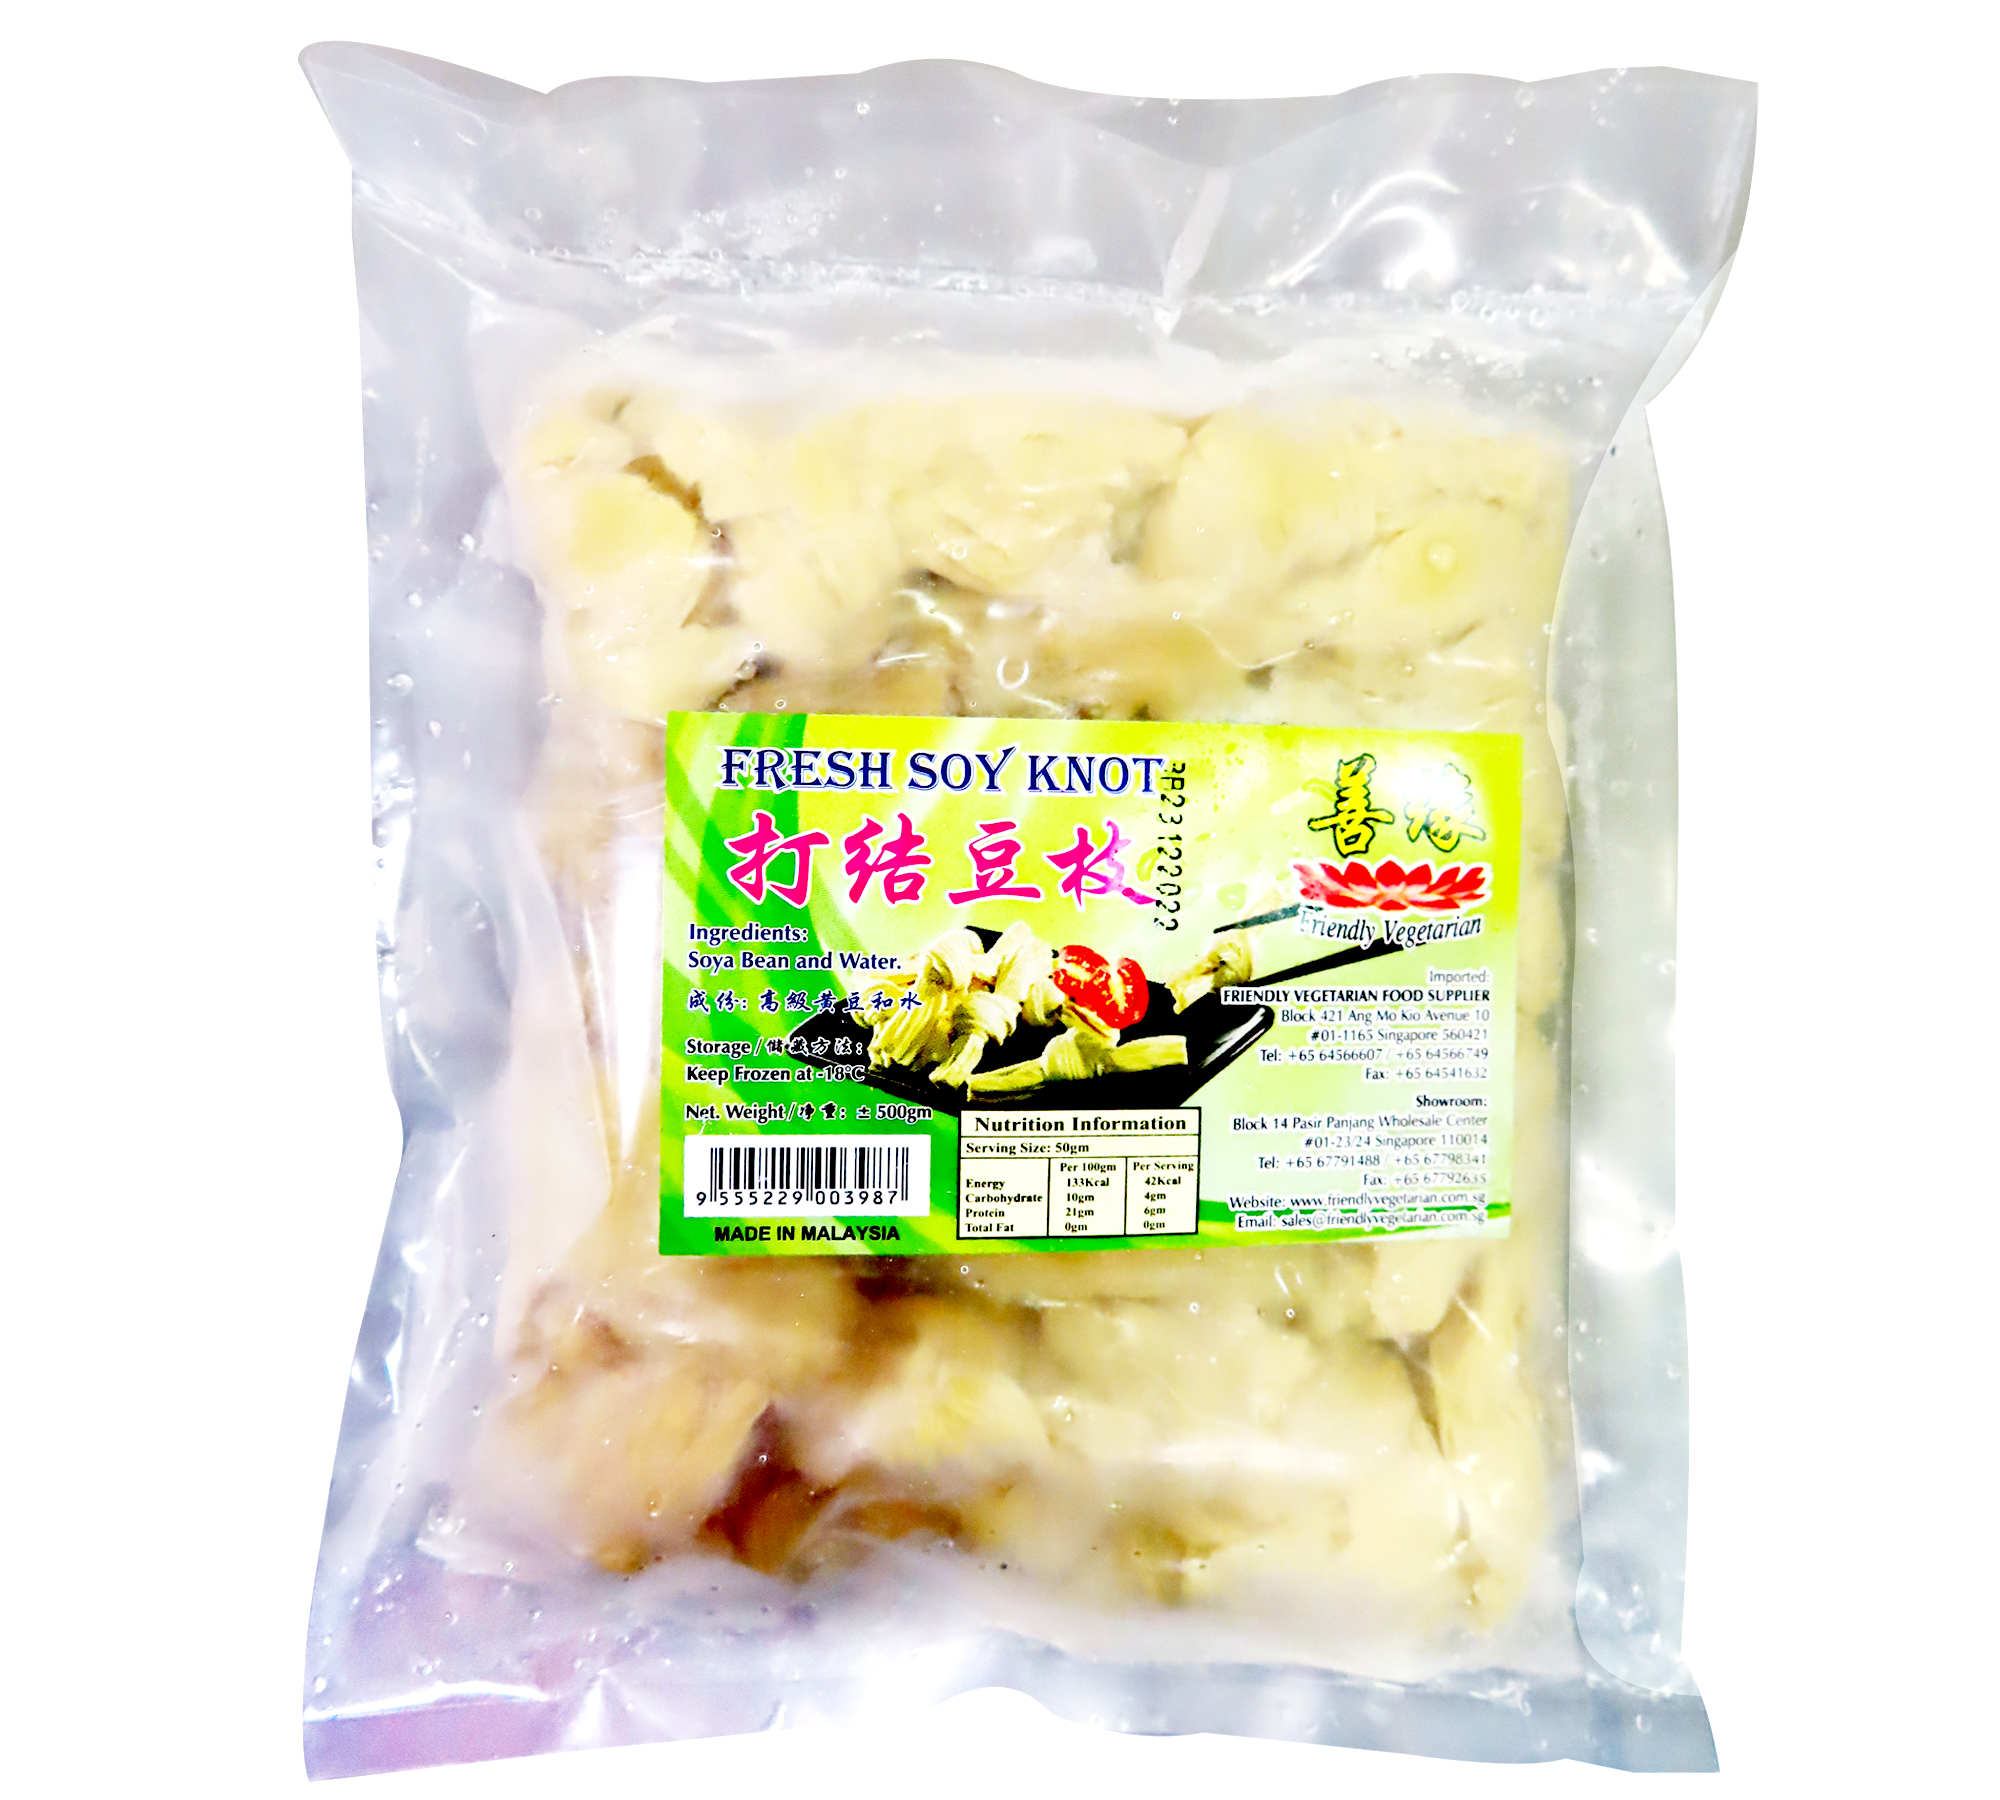 Image Soy Knot (A) 善缘打结豆支 500grams